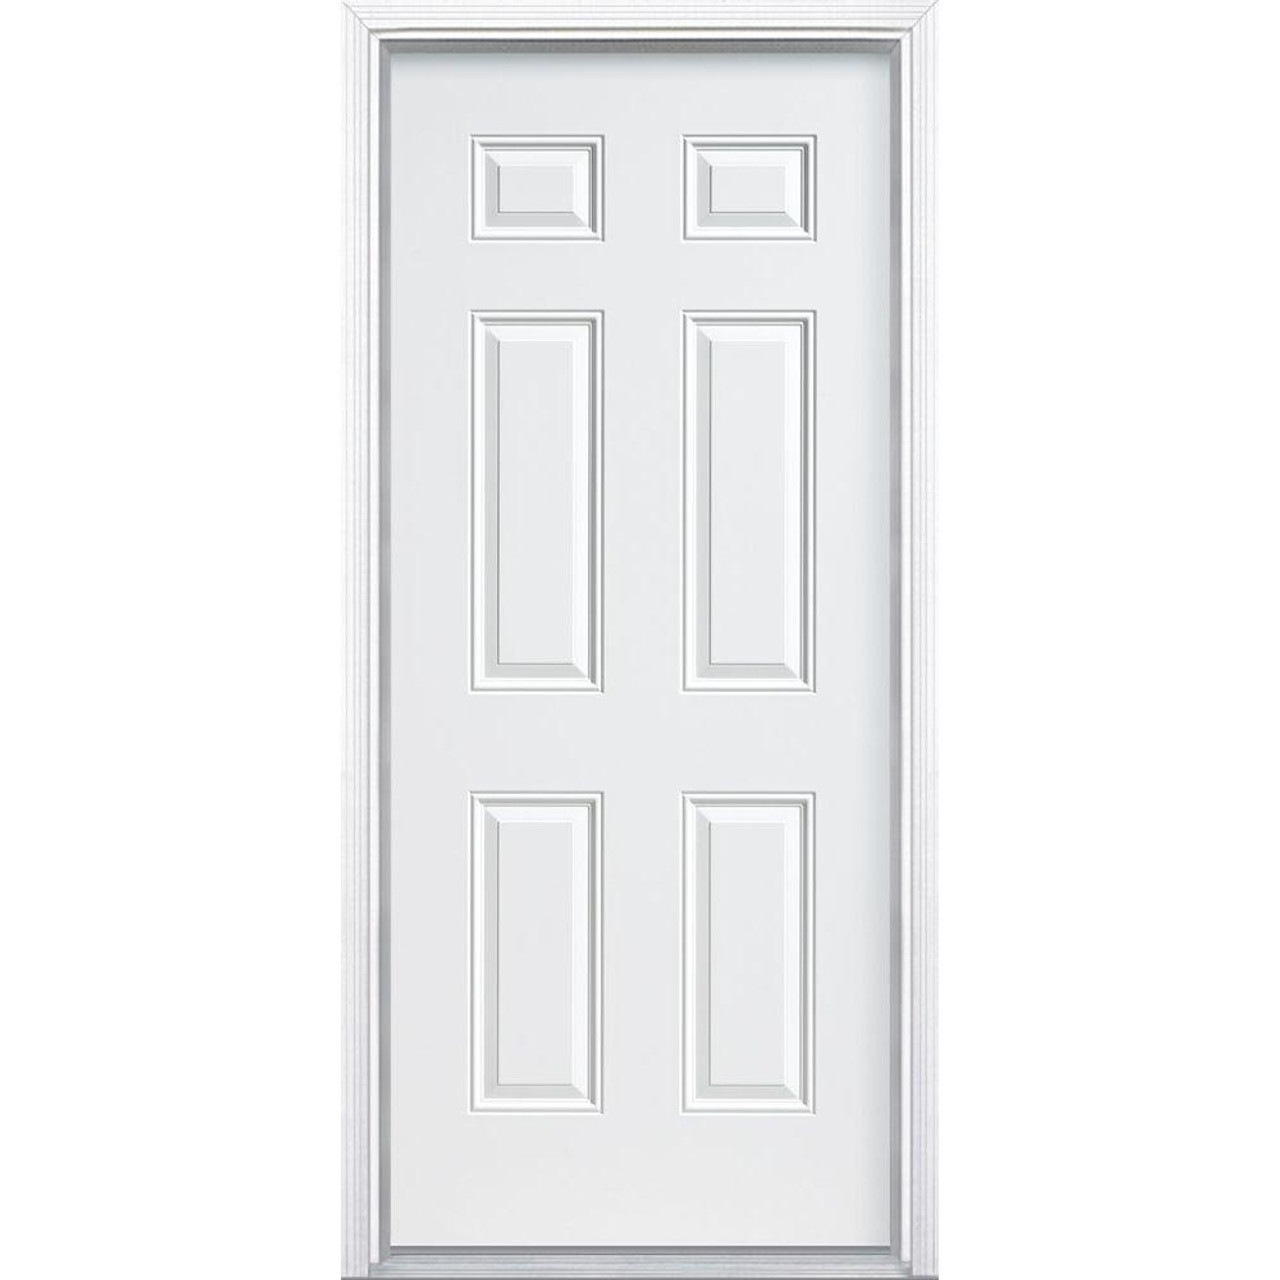 Door on Flats, House Door on 4' x 8' Flat, 4X8 Door Flats